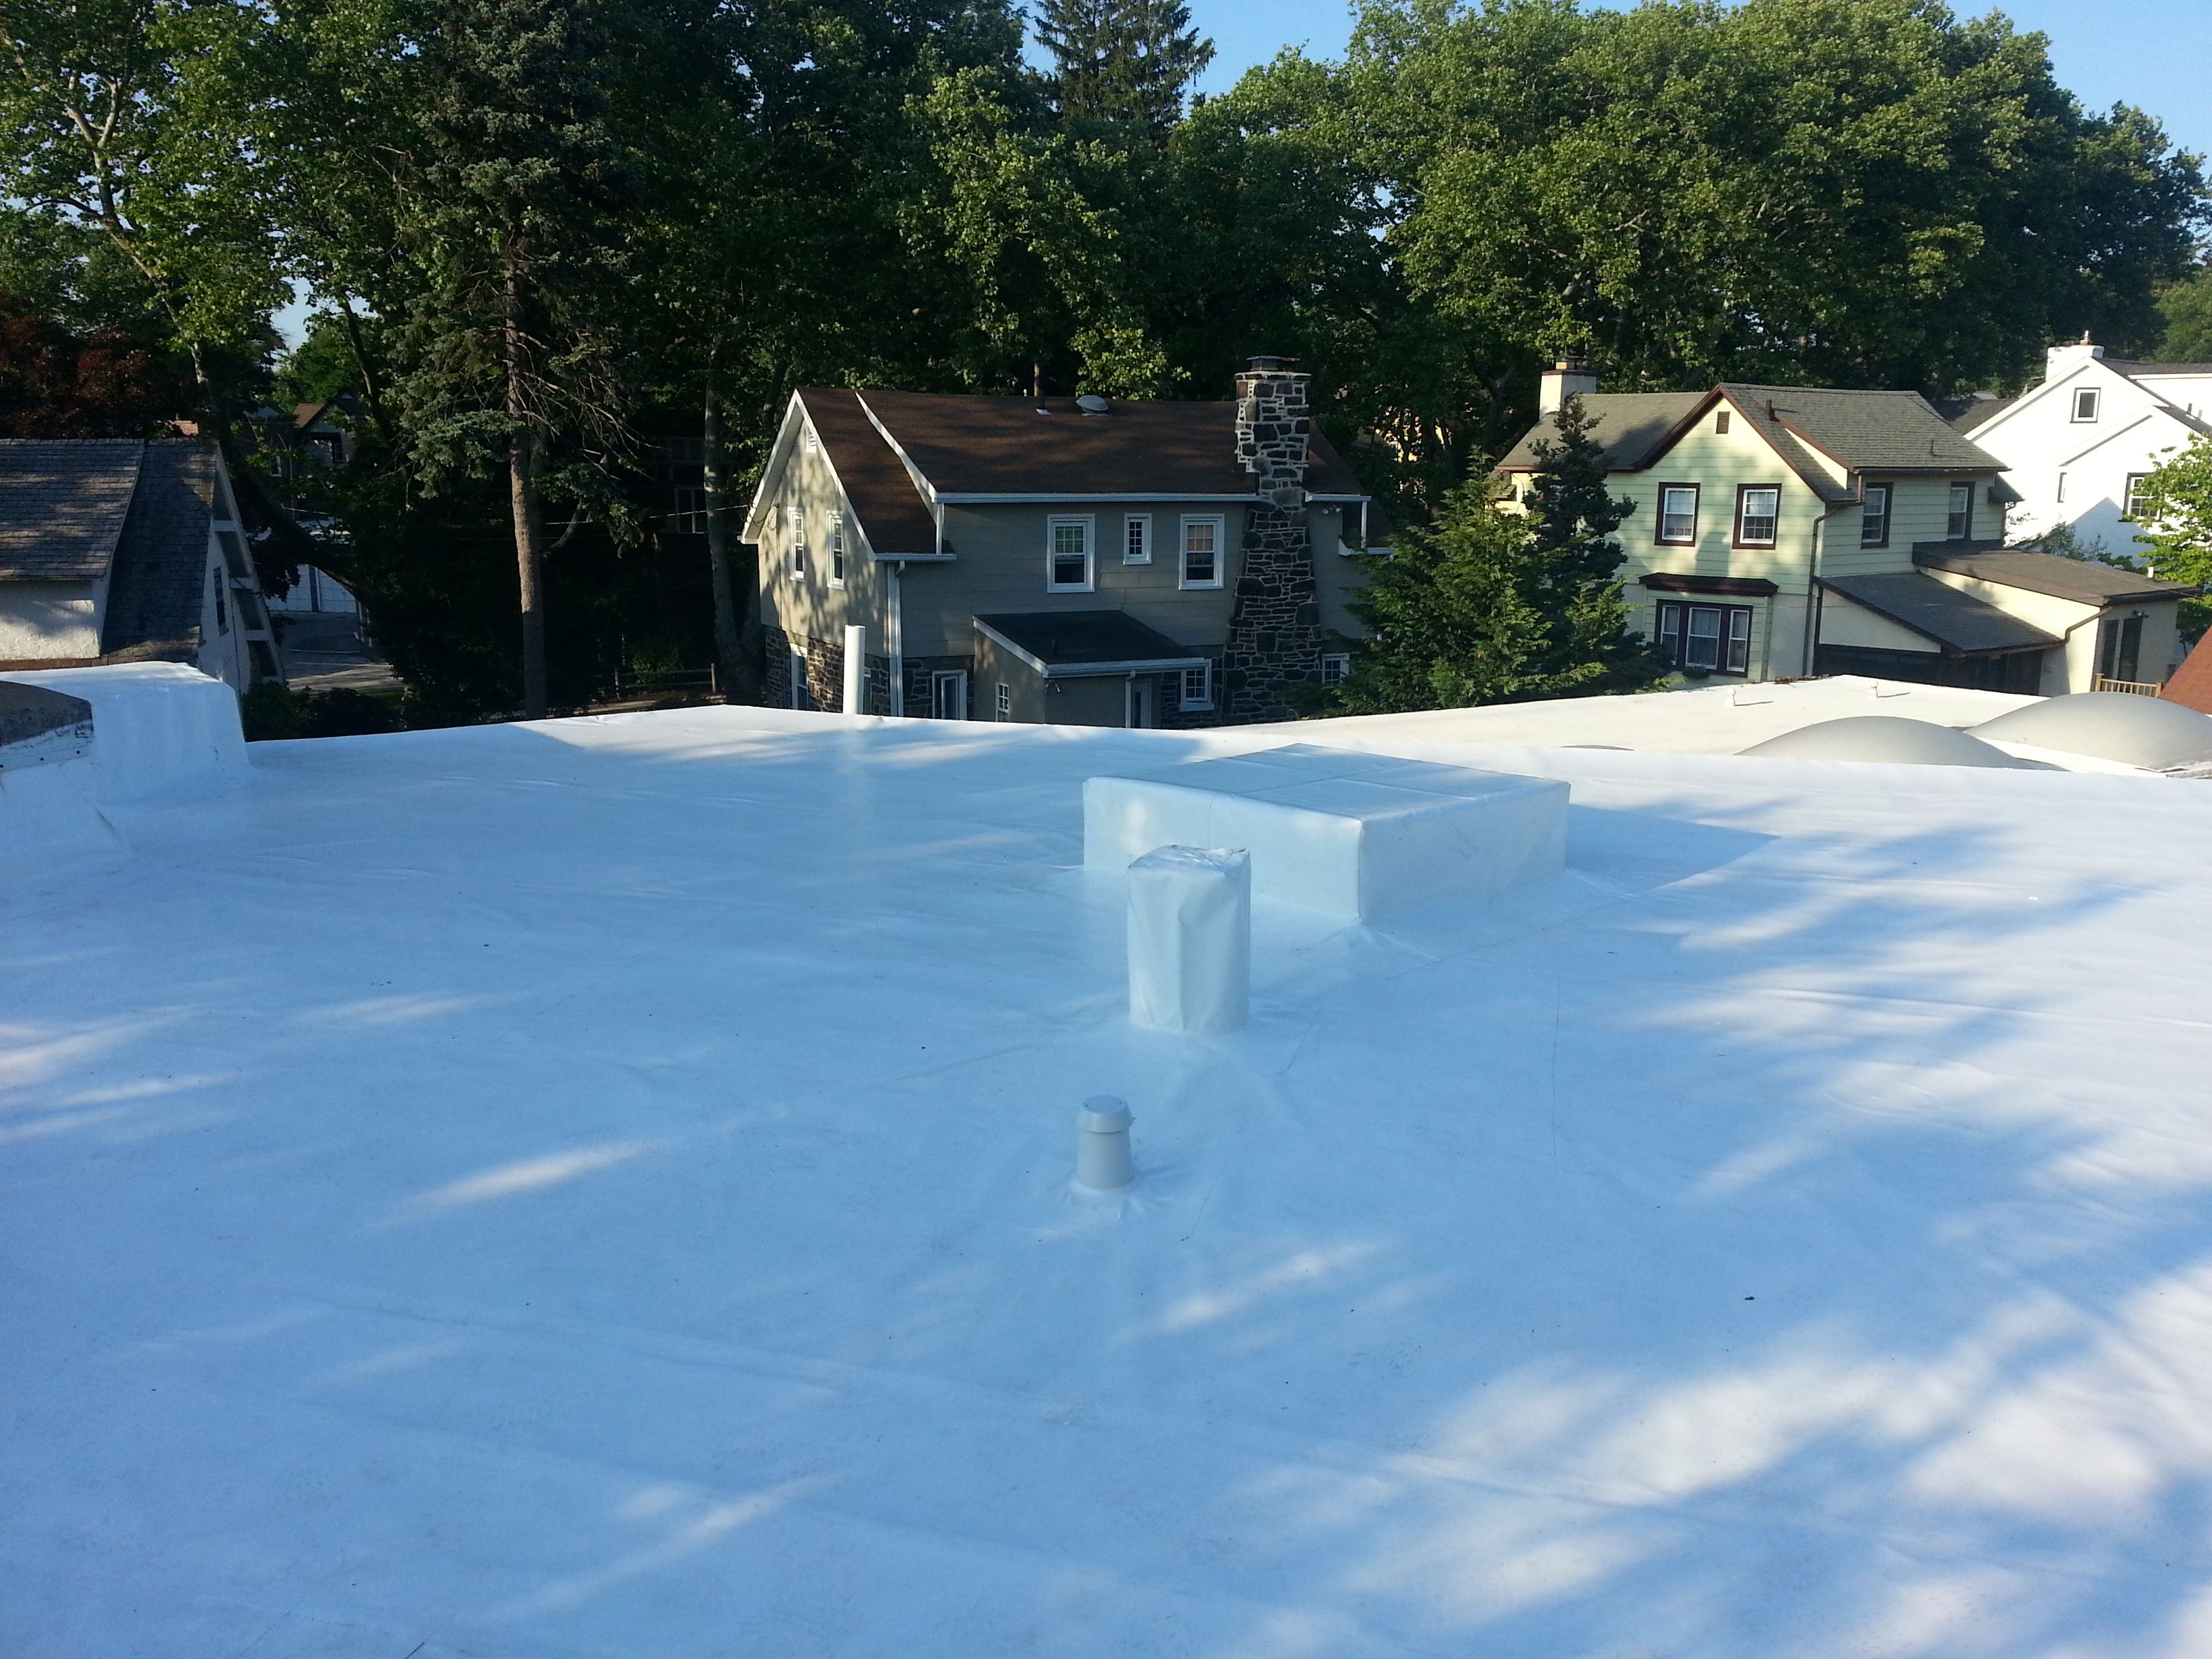 Manchester Roofing Systems Pennsylvania Academy Of Ballet Narberth Pa Duro Last World S Best Flat Roof Roofing Systems Flat Roof Roofing